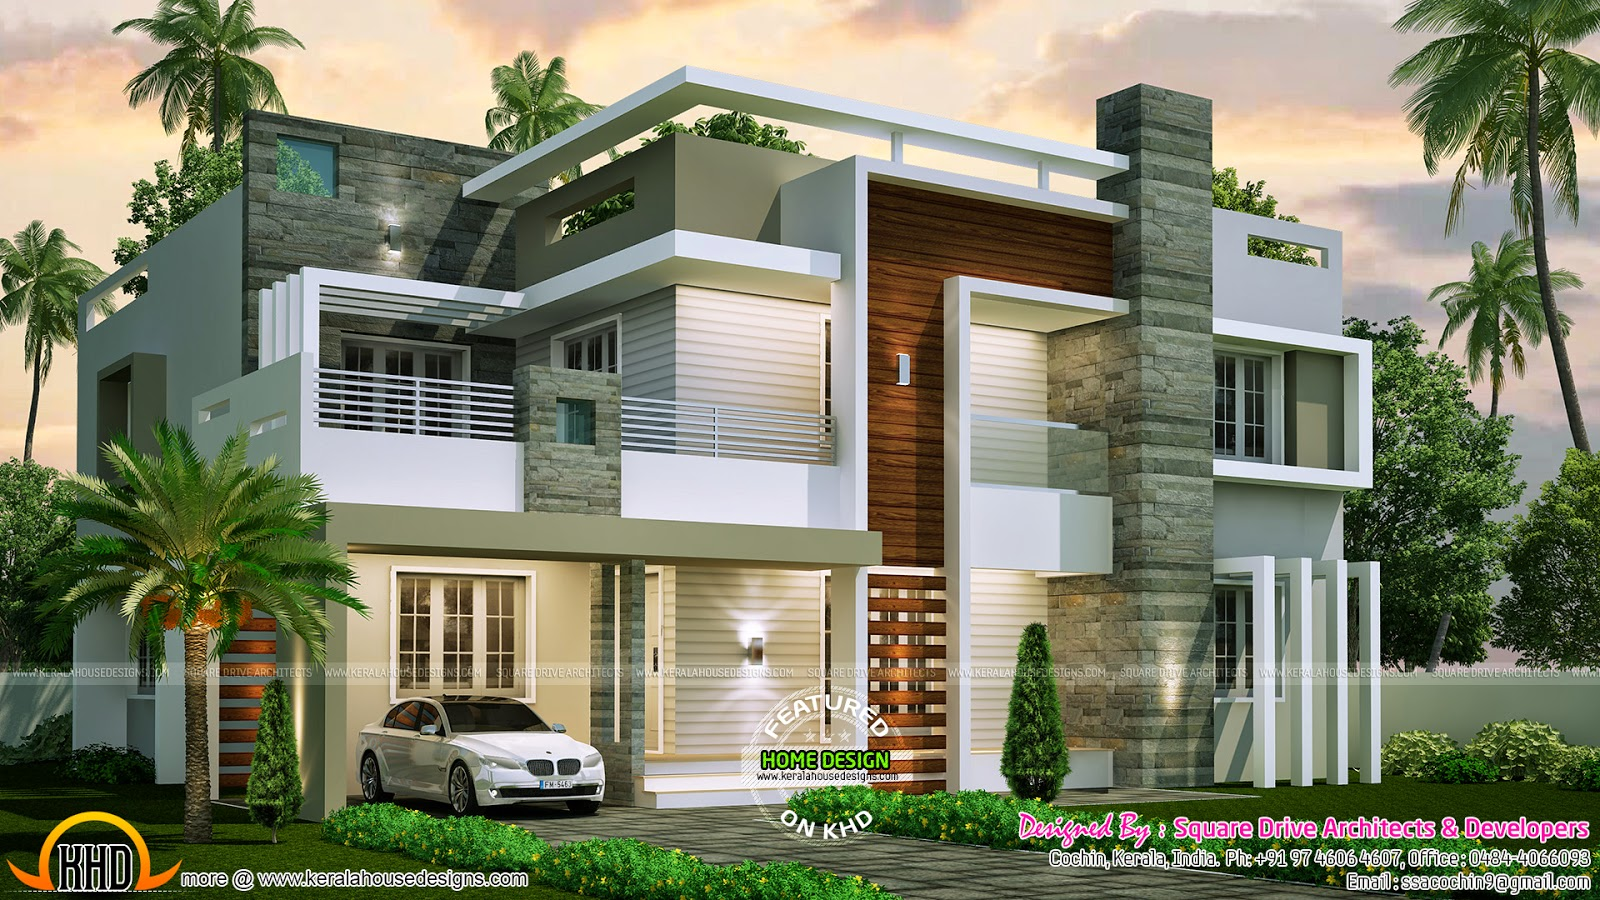 4 bedroom contemporary home design kerala home design for 4 bedroom house plans kerala style architect